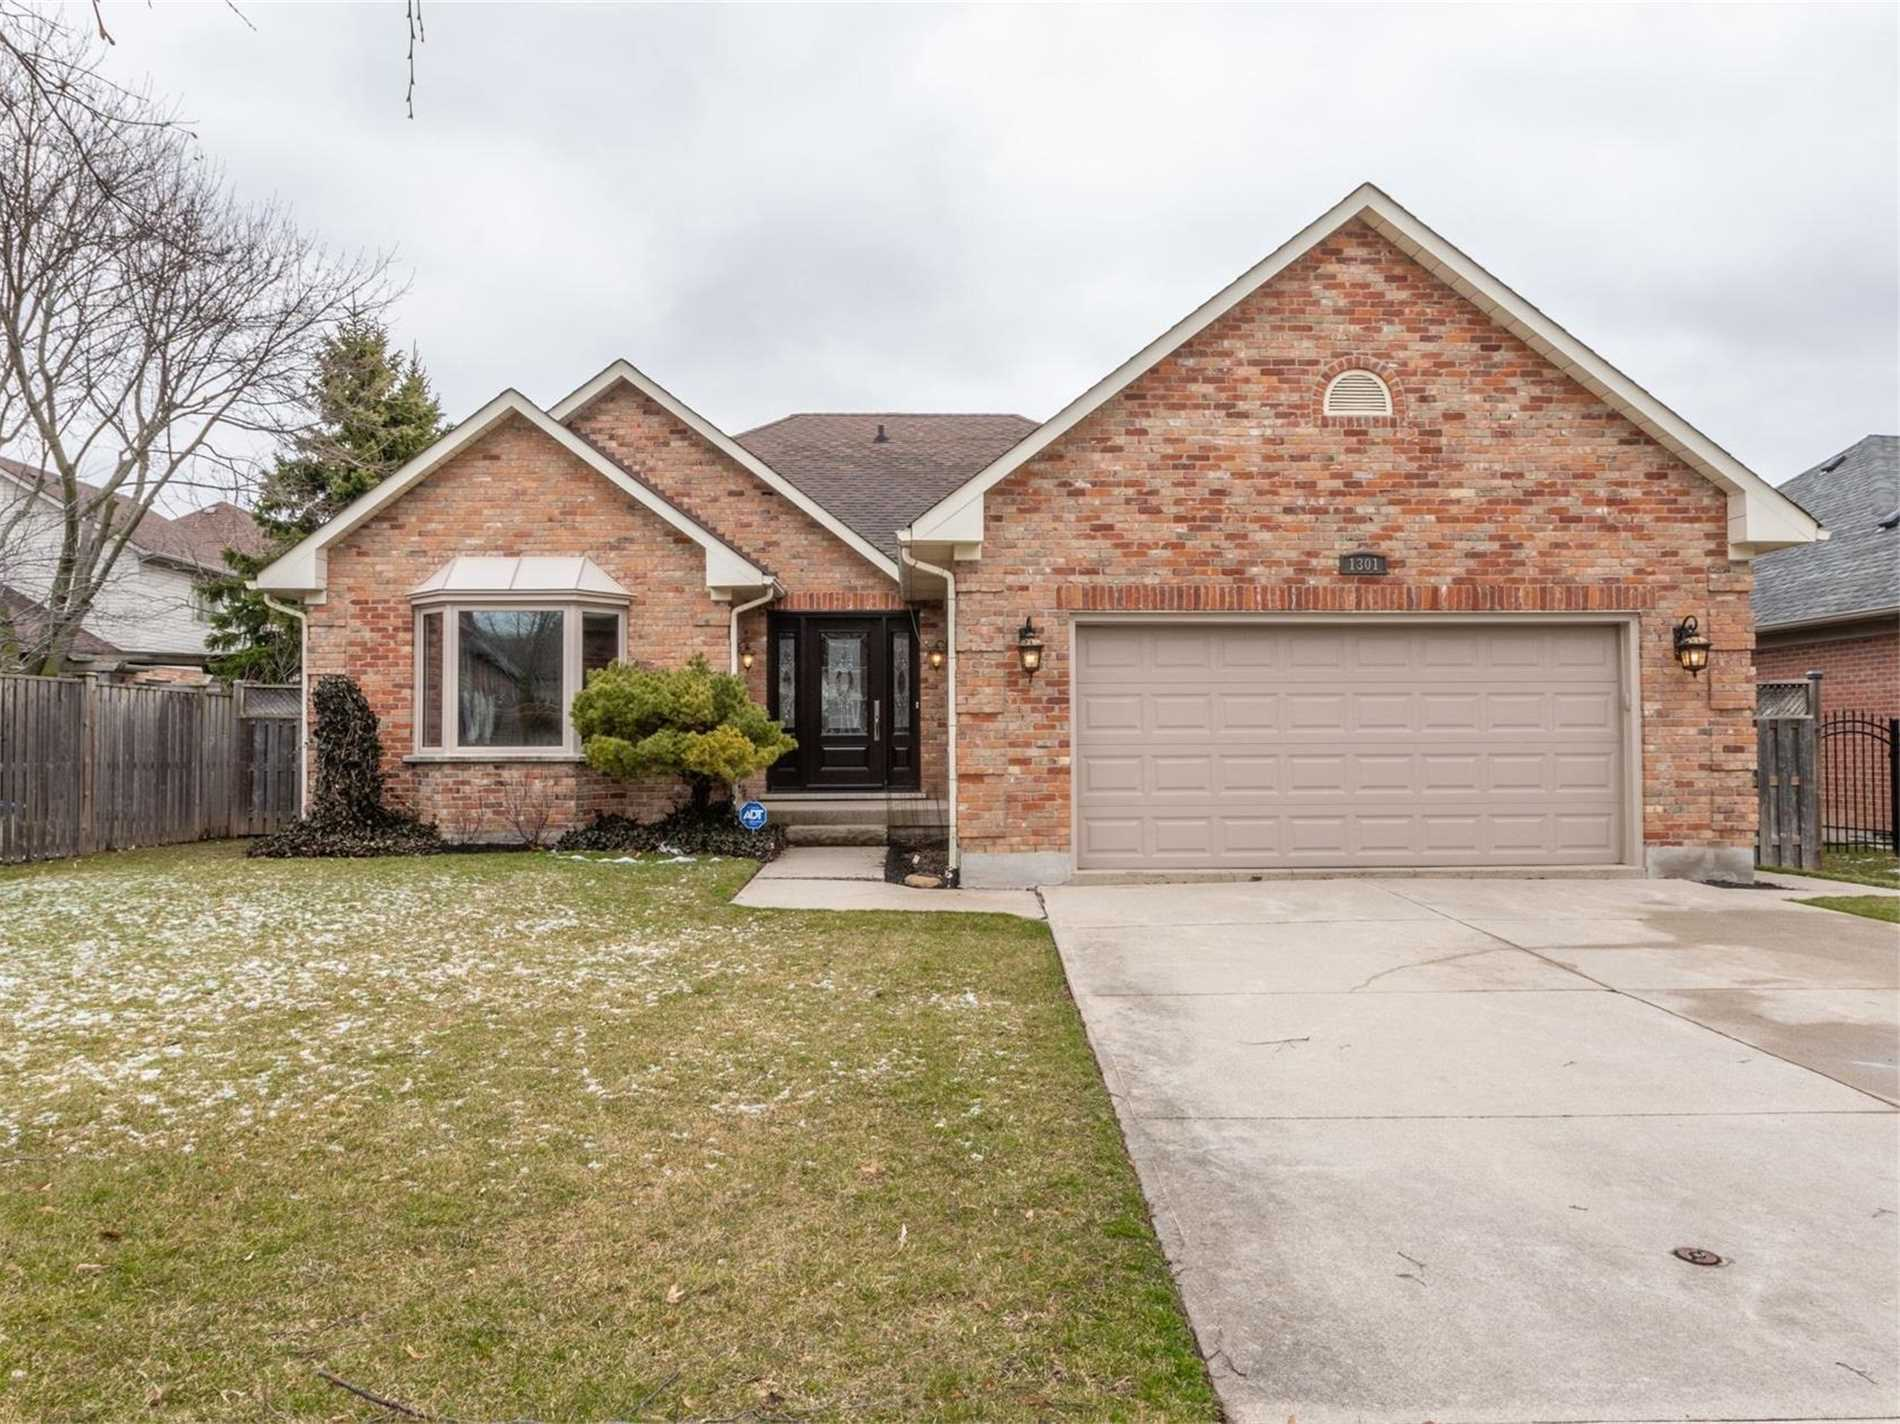 1301 Hazelton Blvd, Burlington, L7P4V5, 4 Bedrooms Bedrooms, ,3 BathroomsBathrooms,Detached,For Sale,Hazelton,W4731298